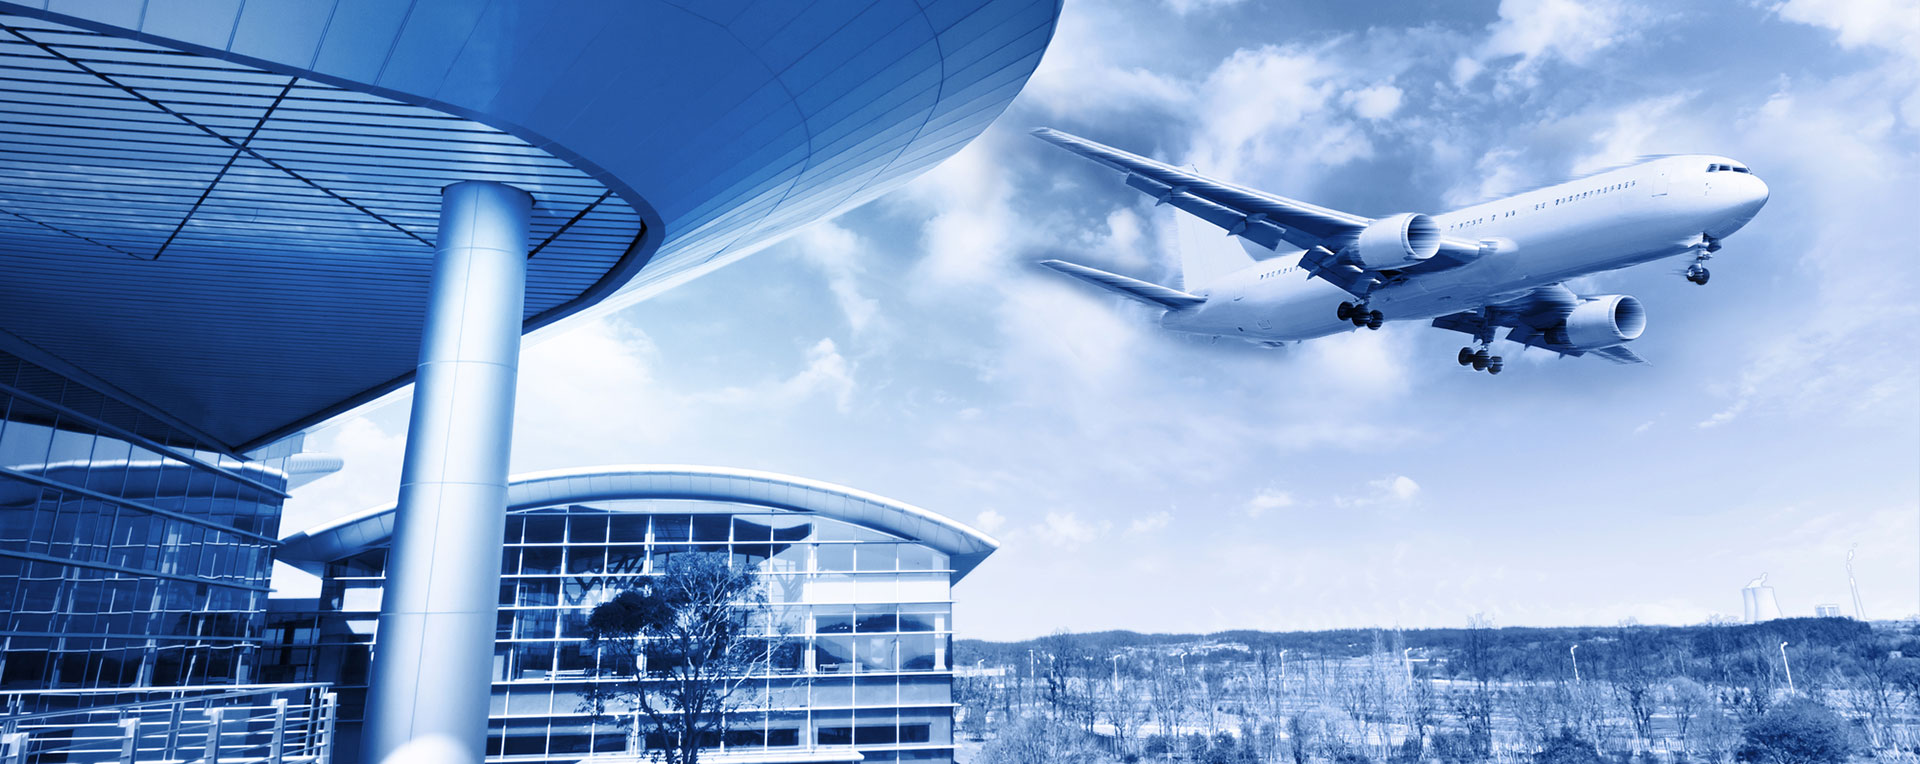 Future Airports: From Here to Where?